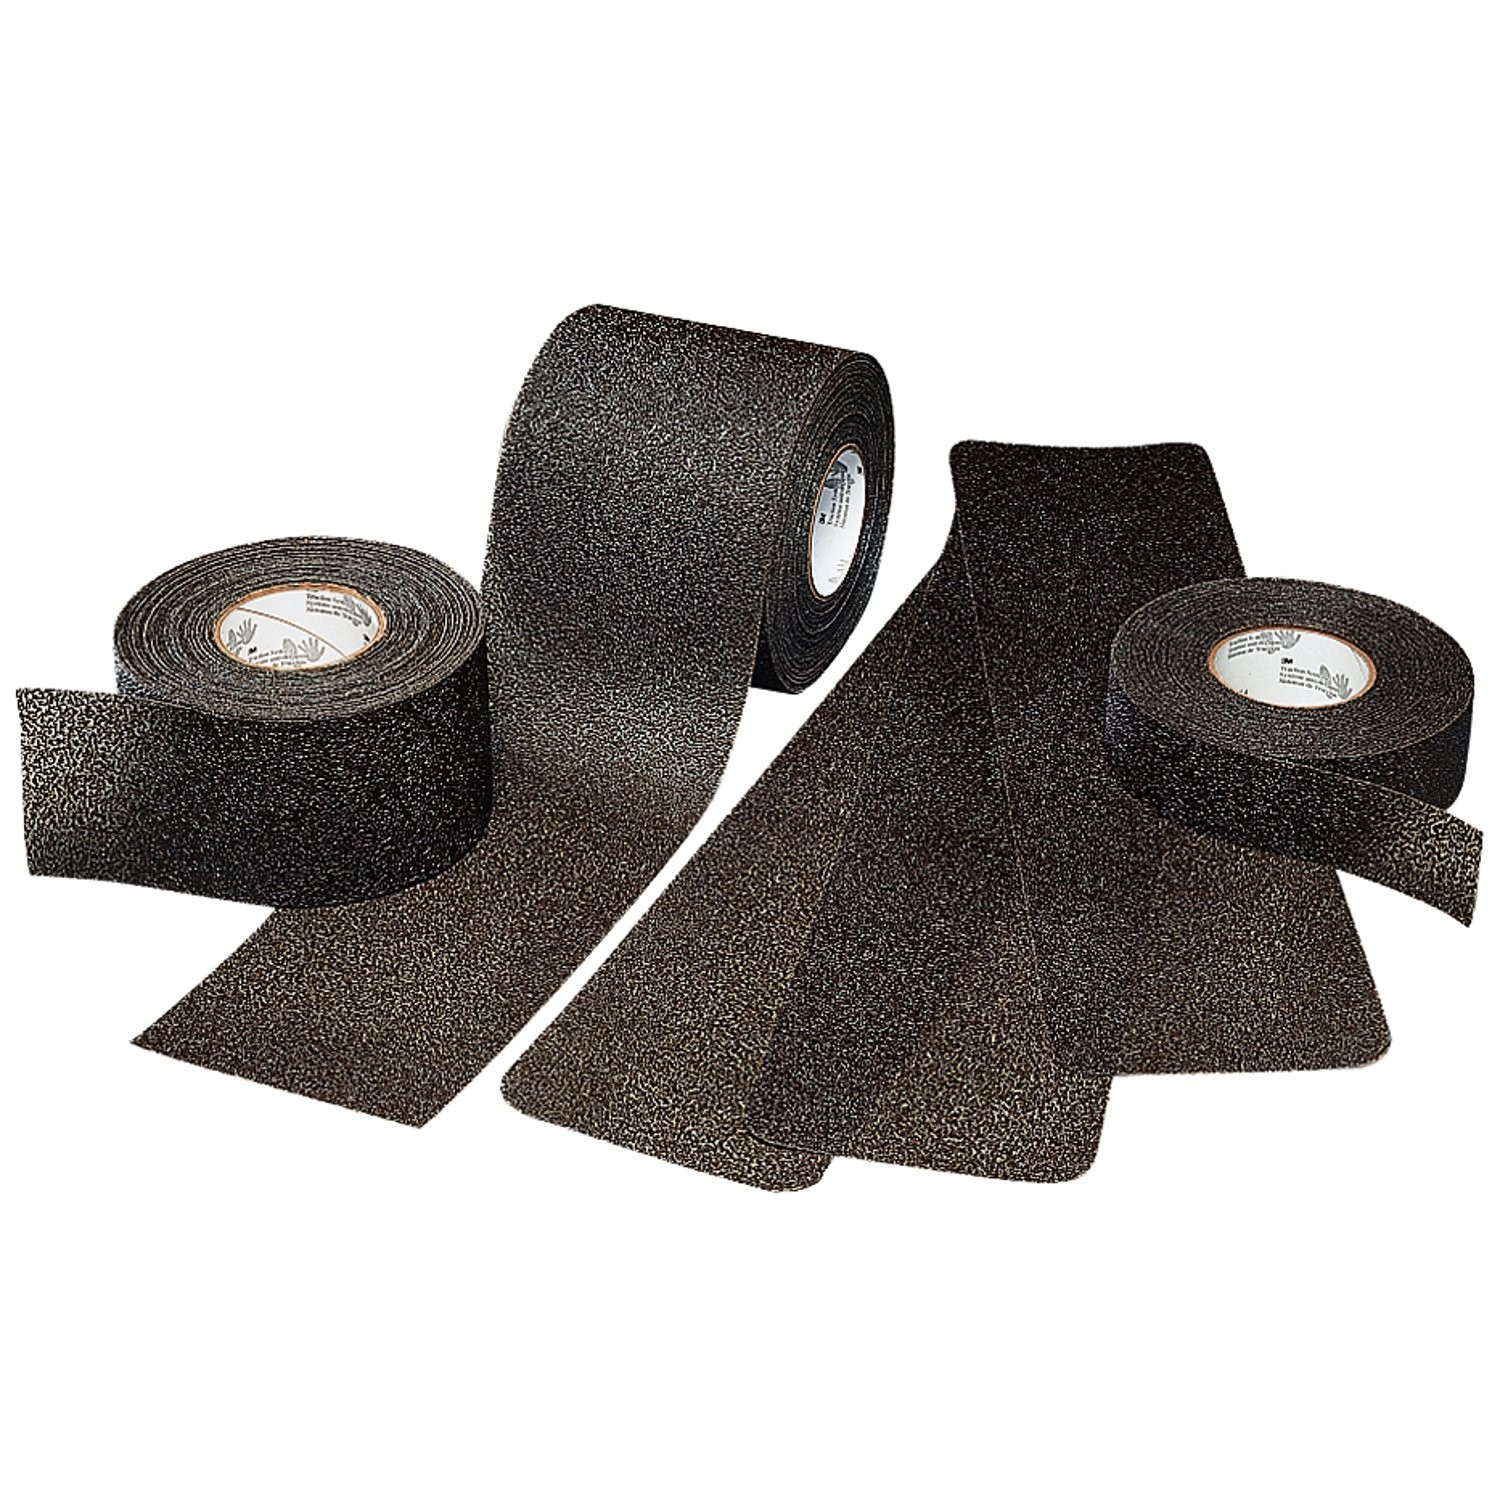 Soft Tread Anti Slip Coating : M™ safety walk™ slip resistant medium resilient tapes and